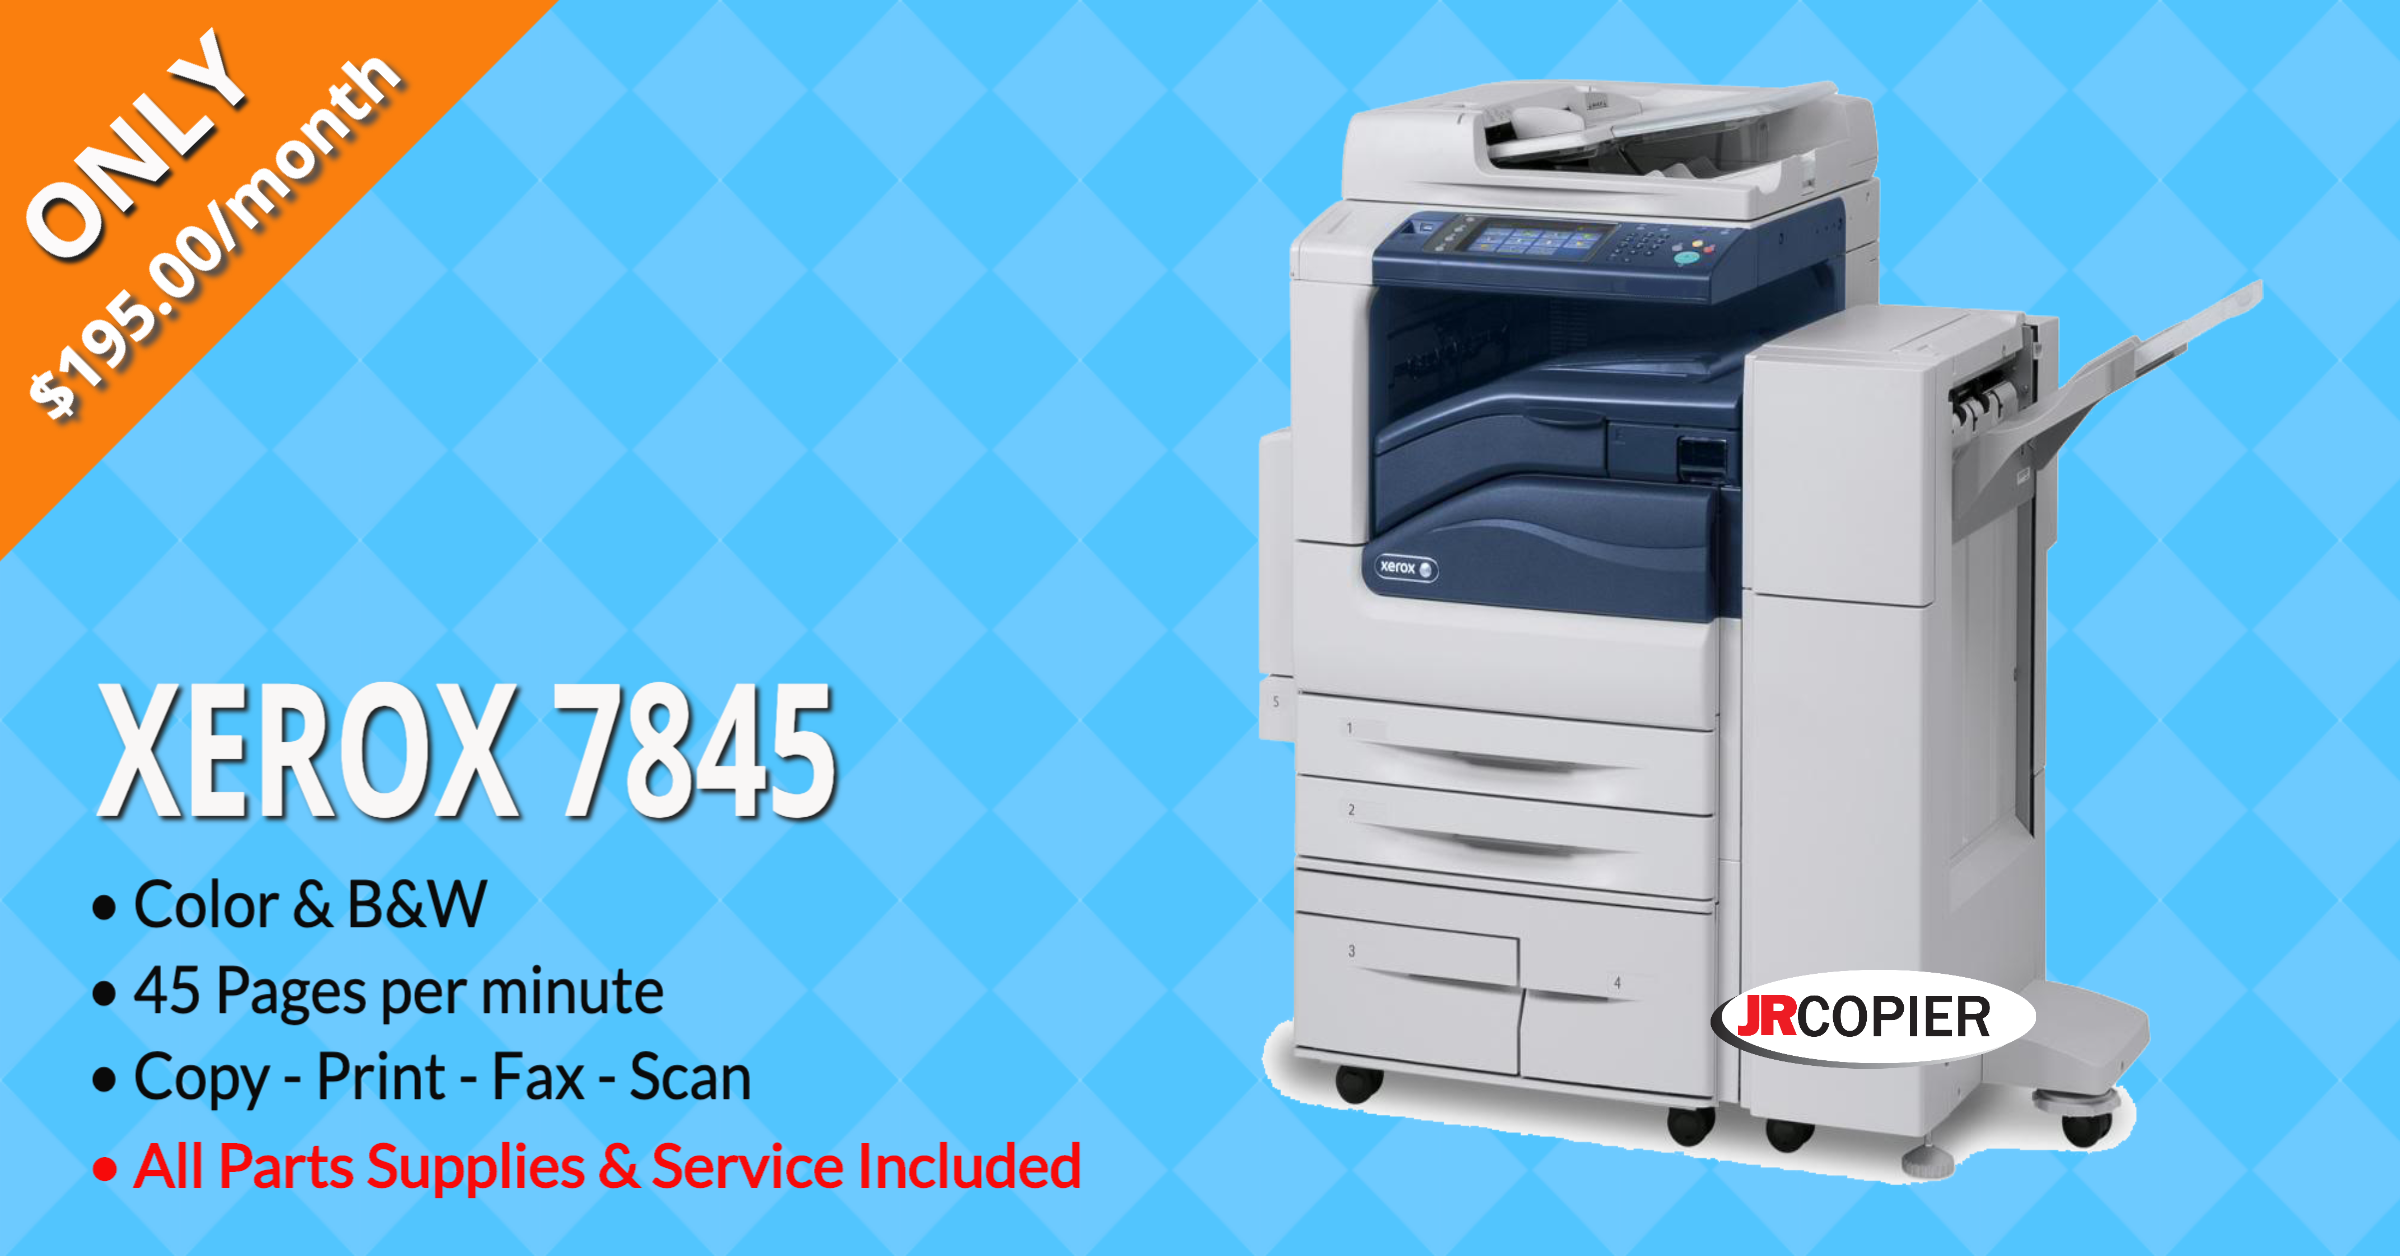 Copy Machine Companies 30213, 30268, 30291